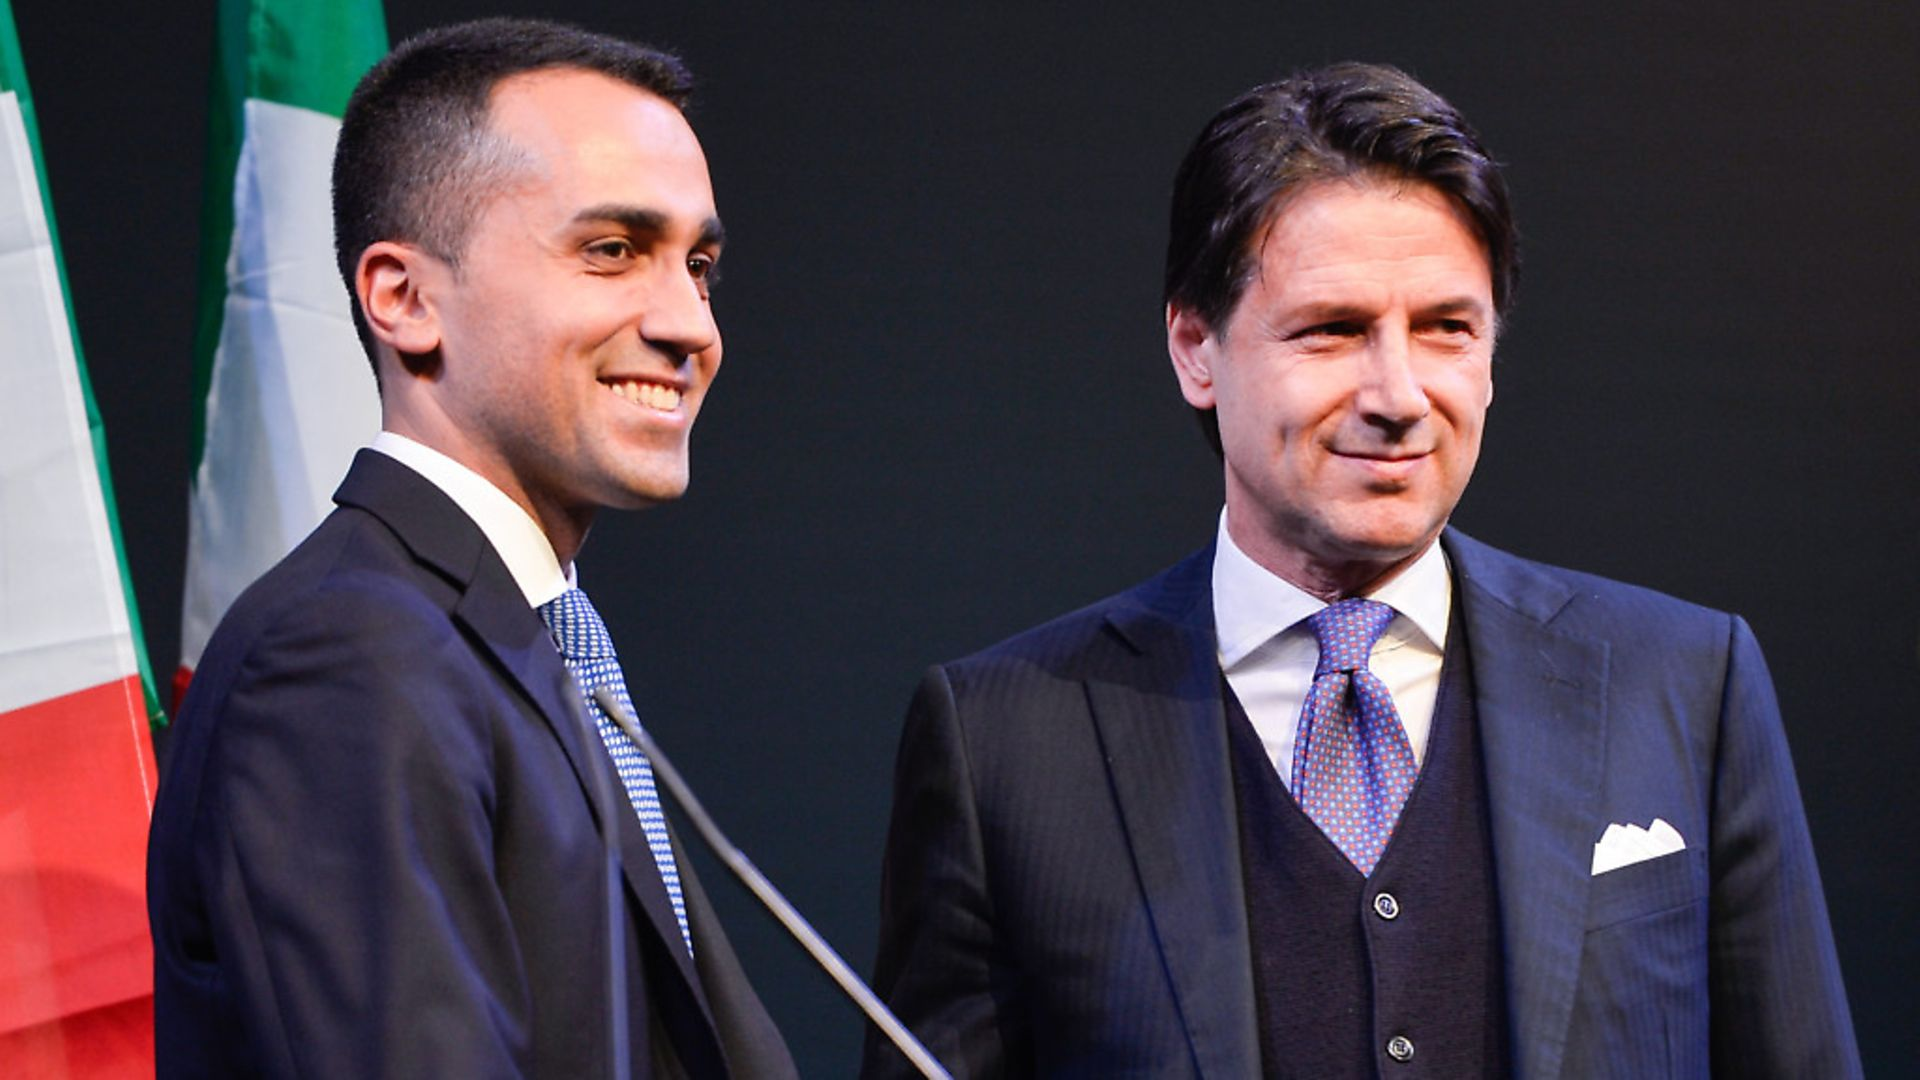 Giuseppe Conte and leader of the Five Star Movement Luigi Di Maio in Rome. Picture: PA - Credit: SIPA USA/PA Images